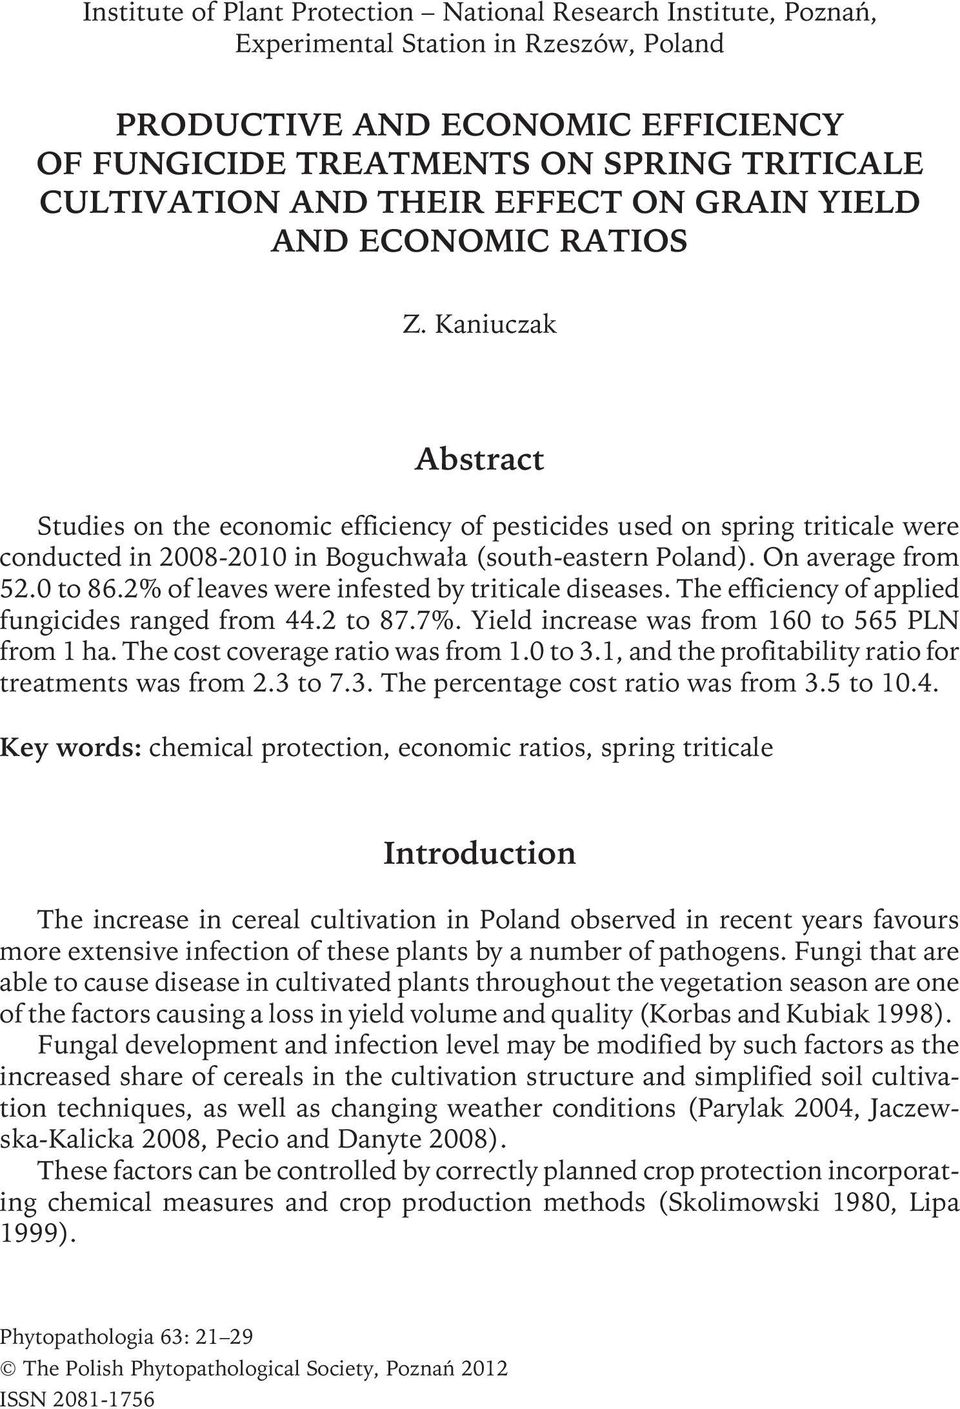 Kaniuczak Abstract Studies on the economic efficiency of pesticides used on spring triticale were conducted in 2008-2010 in Boguchwała (south-eastern Poland). On average from 52.0 to 86.